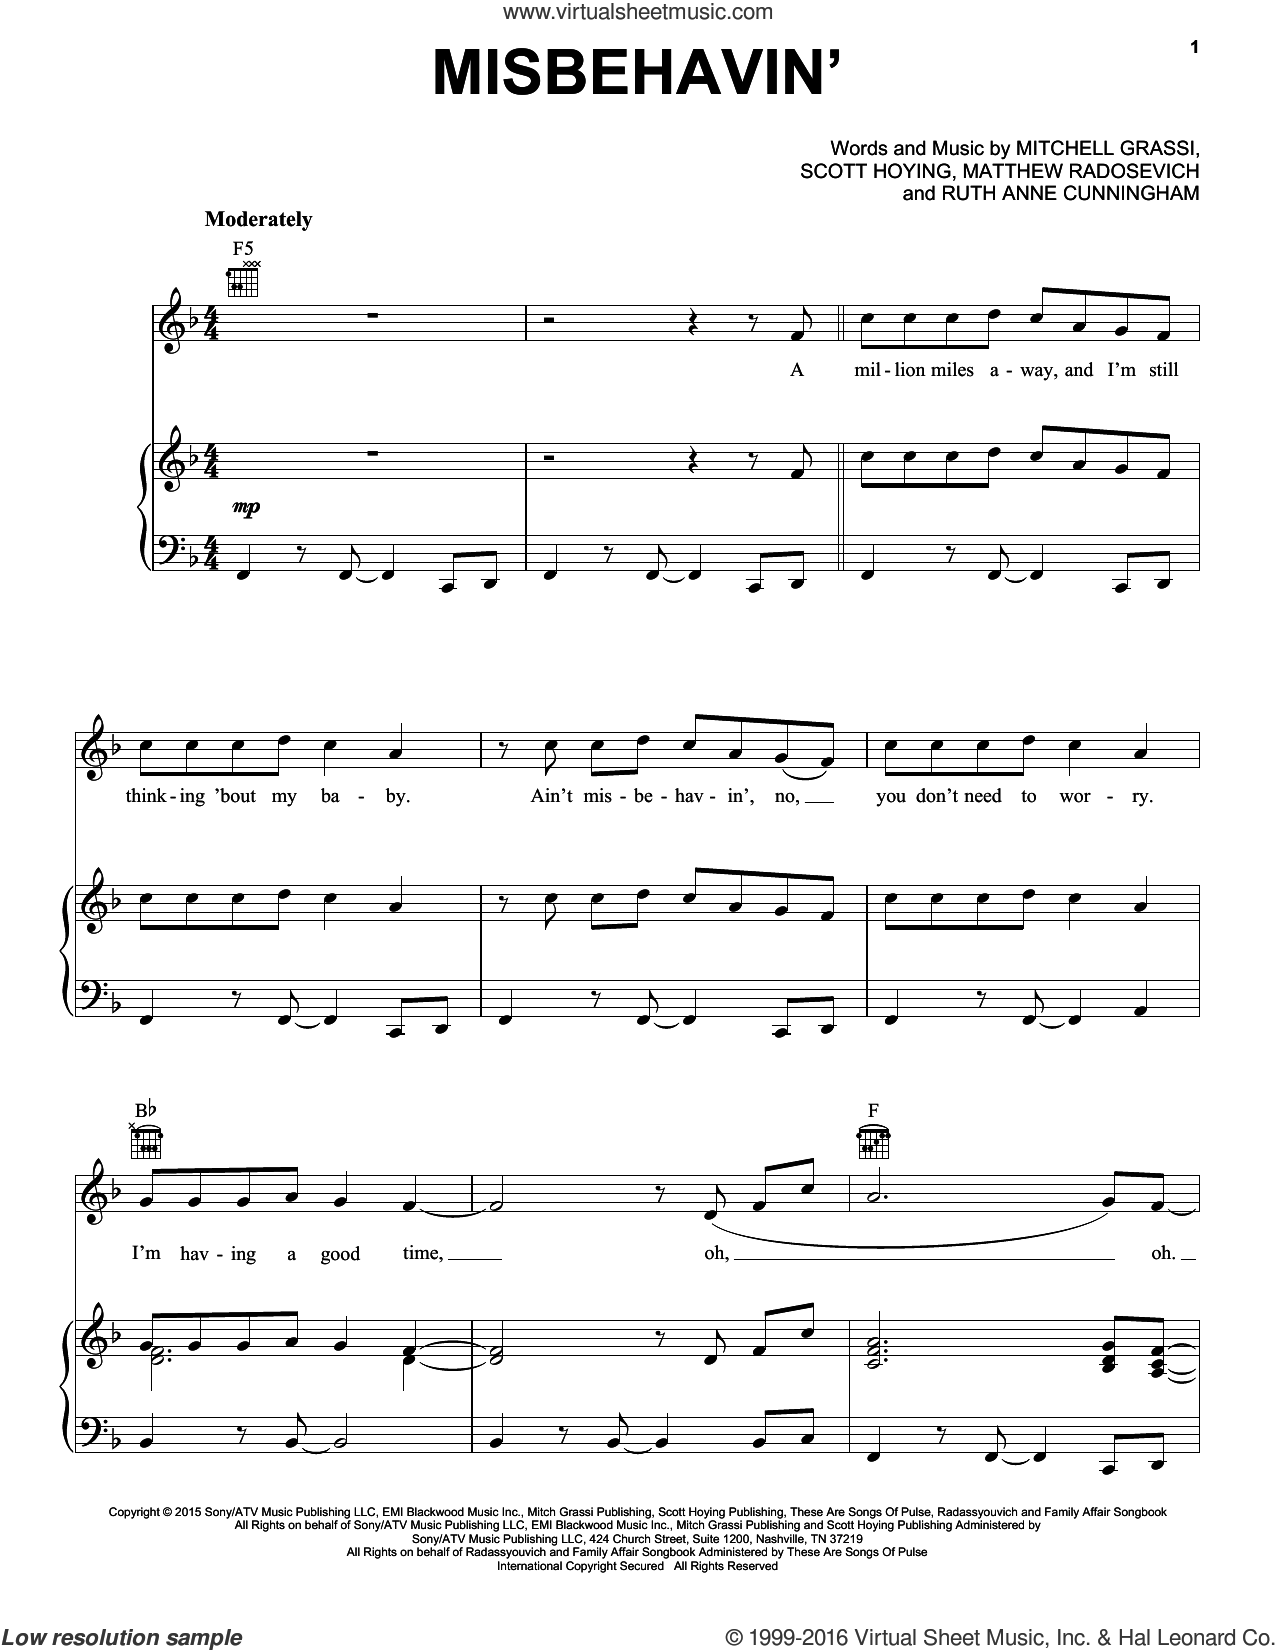 Misbehavin' sheet music for voice, piano or guitar by Pentatonix, Matthew Radosevich, Mitchell Grassi, Ruth Anne Cunningham and Scott Hoying, intermediate skill level